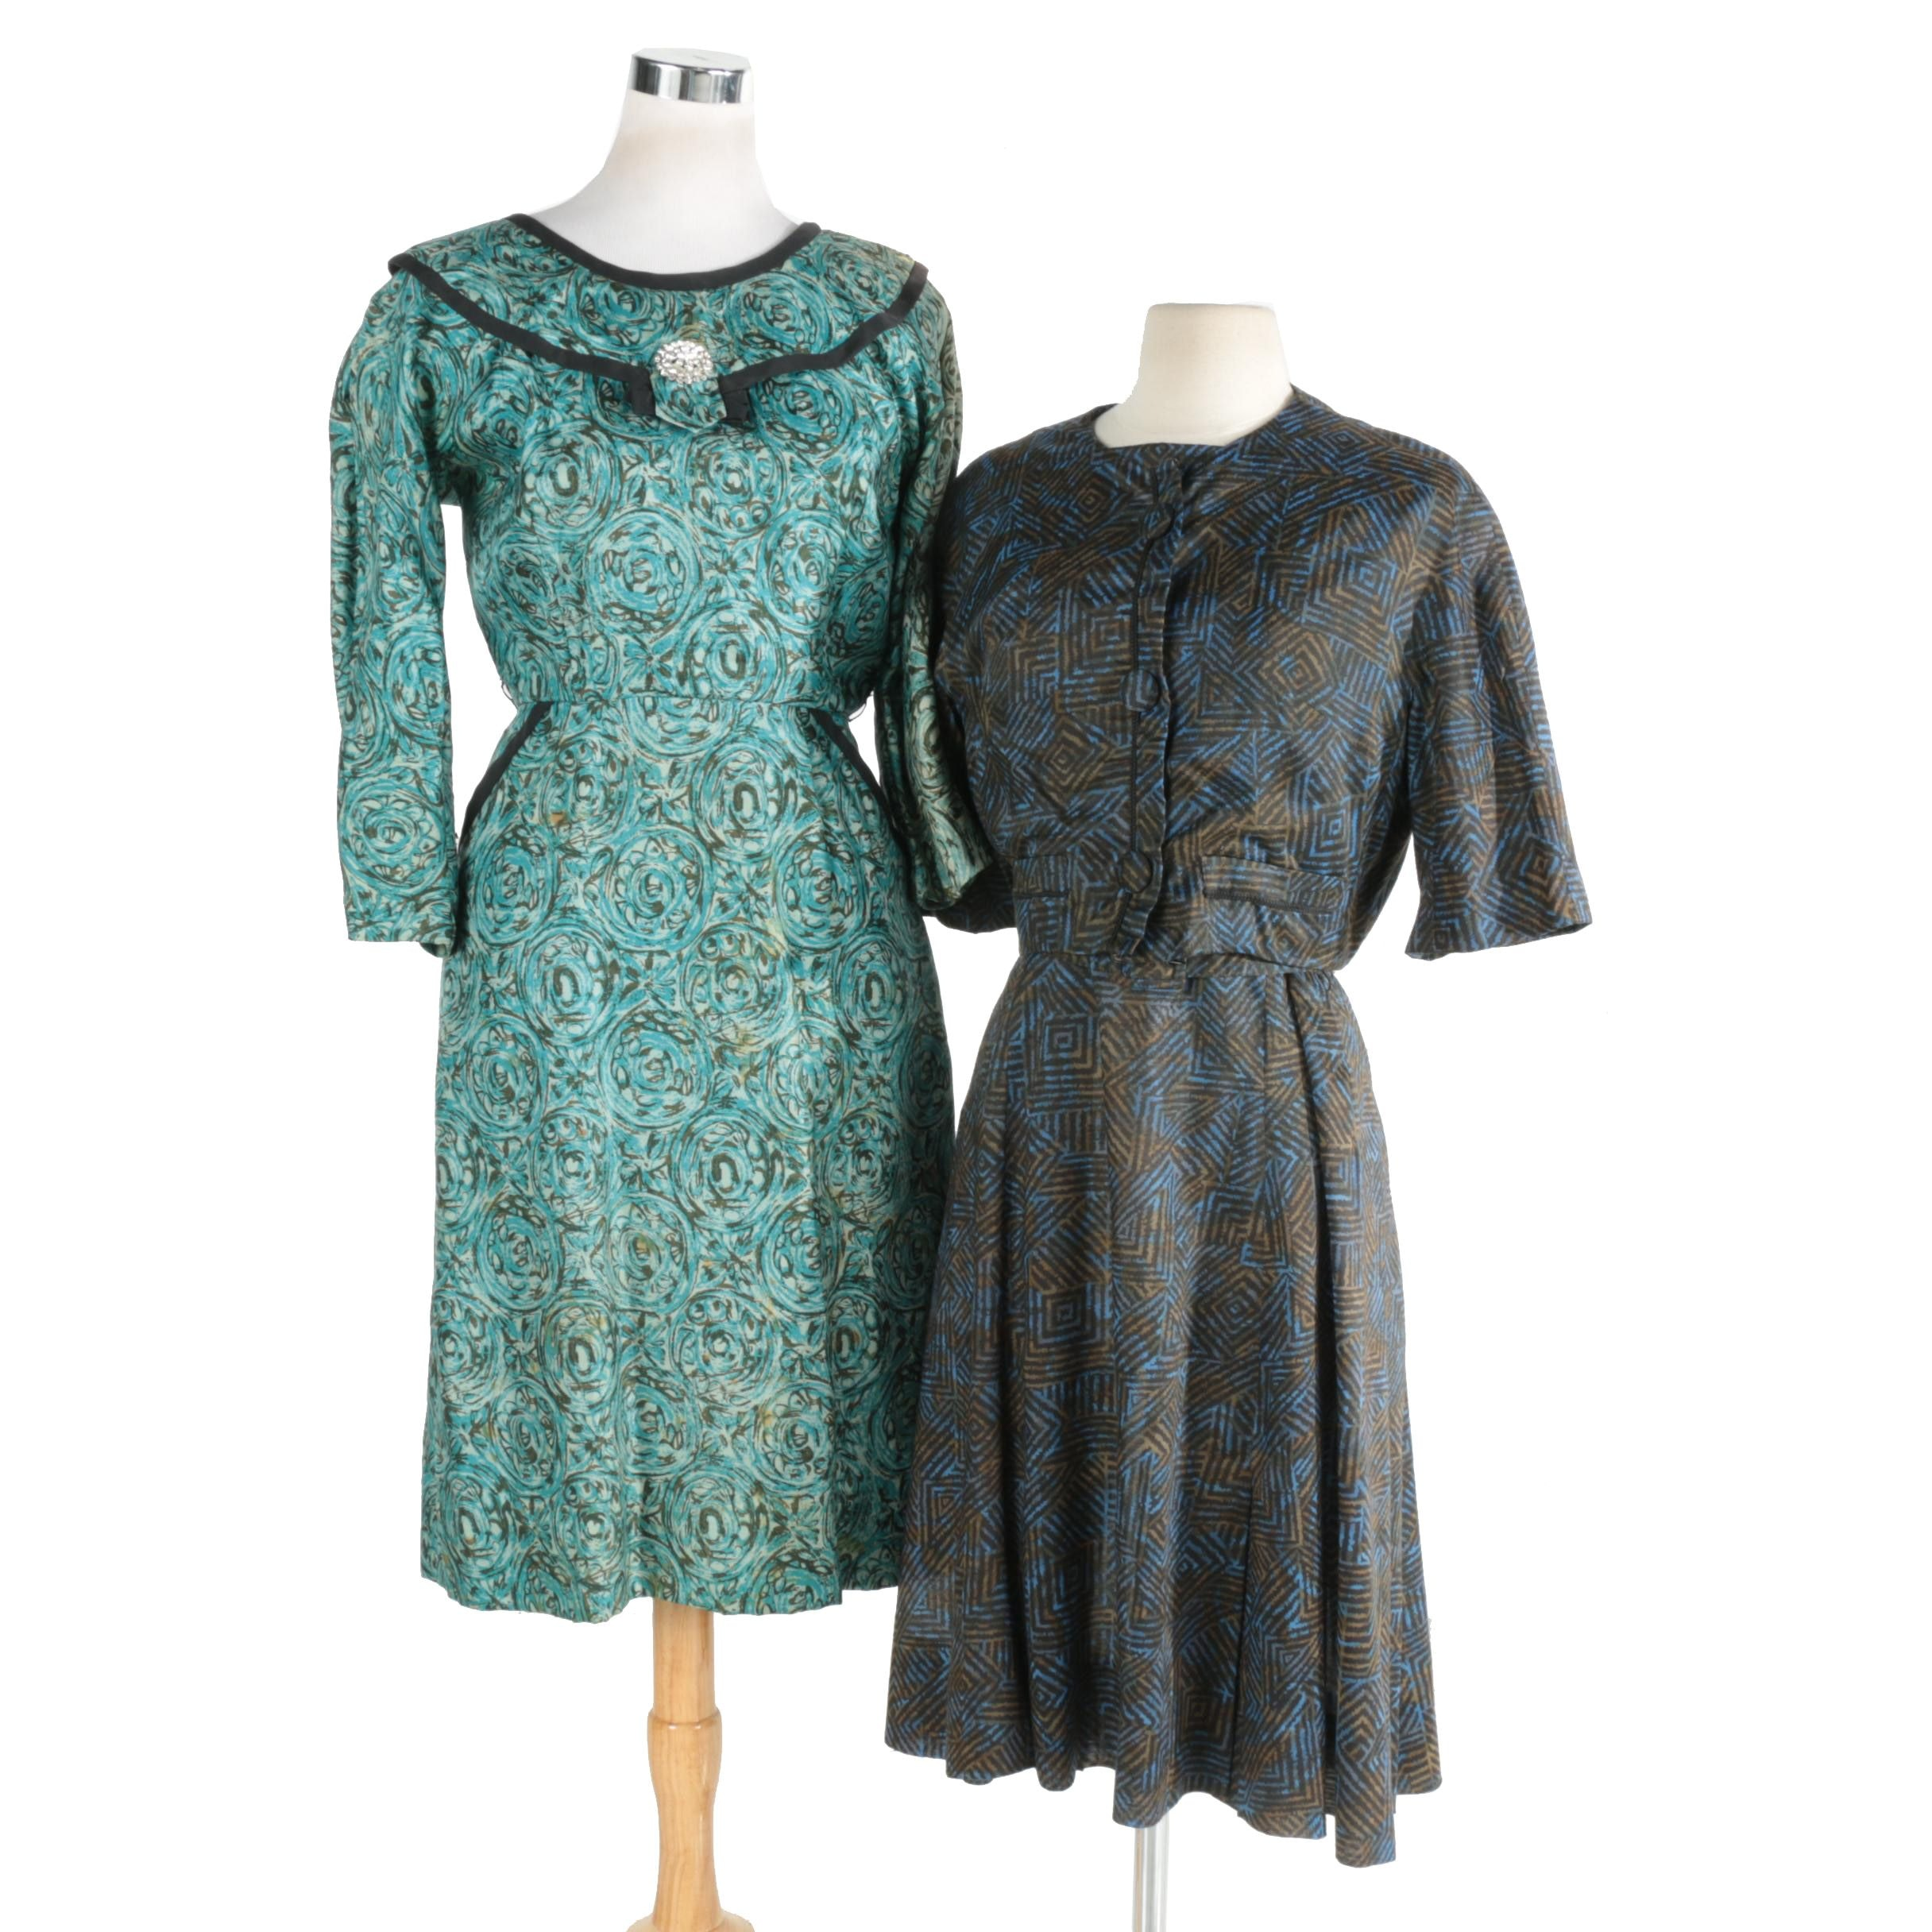 A Pair of Vintage Dresses